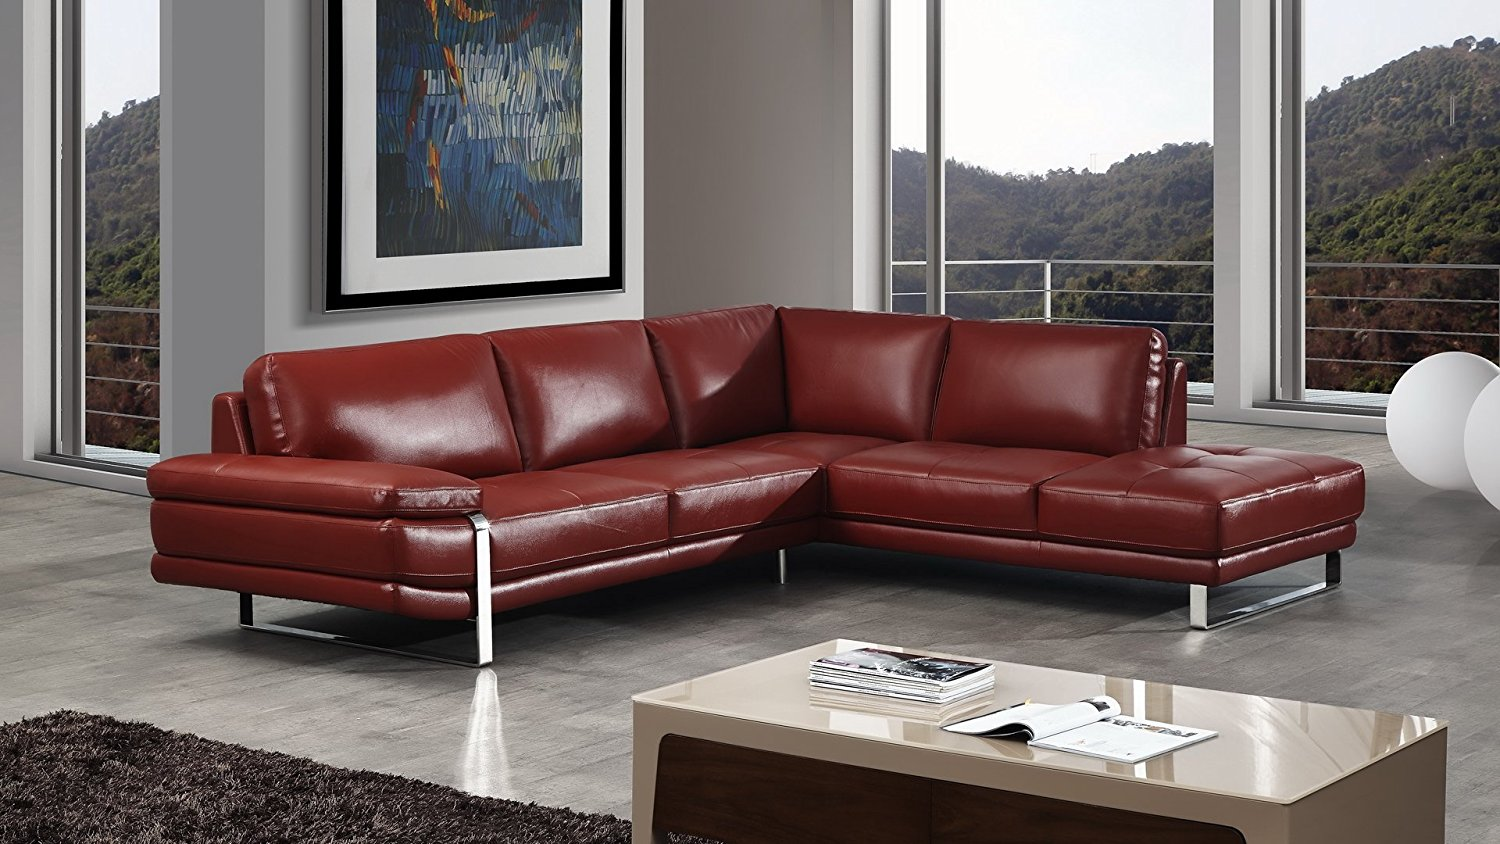 American Eagle Furniture 2 Piece King Collection Premium Italian Leather Sectional, Sofa & Right Chaise, Red